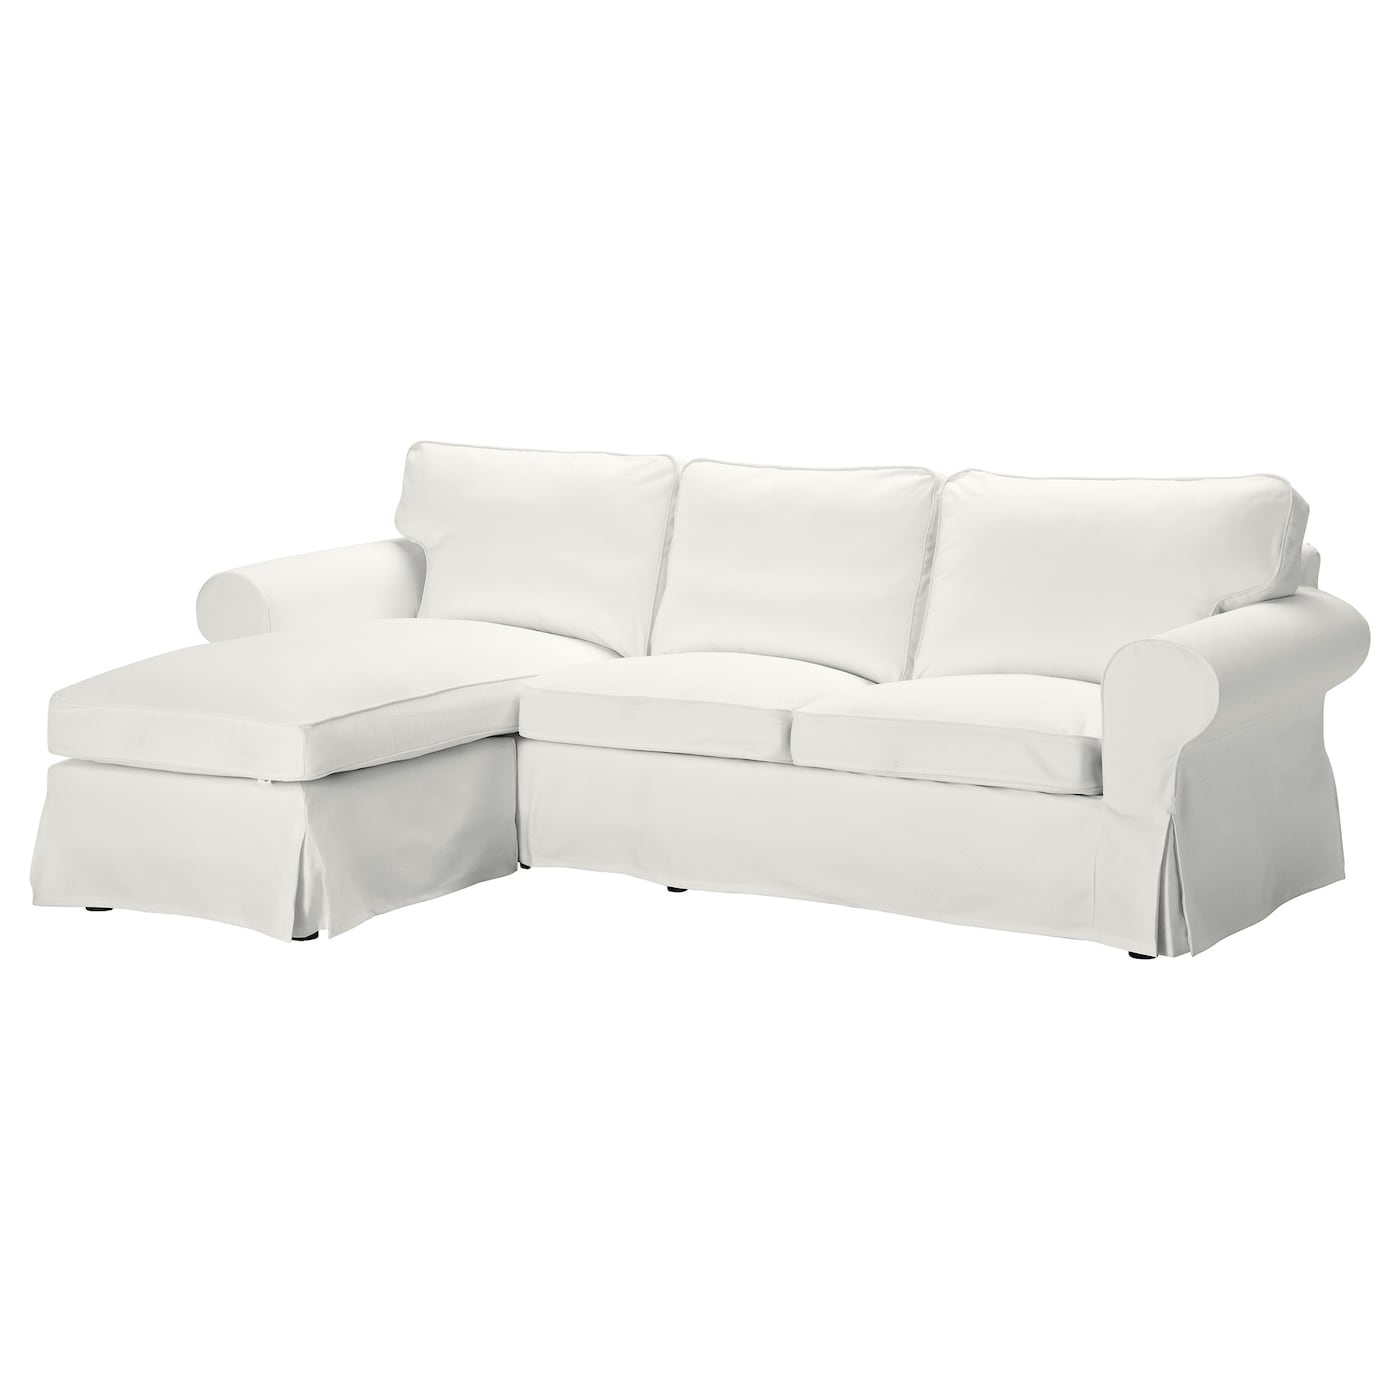 Sofa ikea  EKTORP Two-seat sofa and chaise longue Blekinge white - IKEA